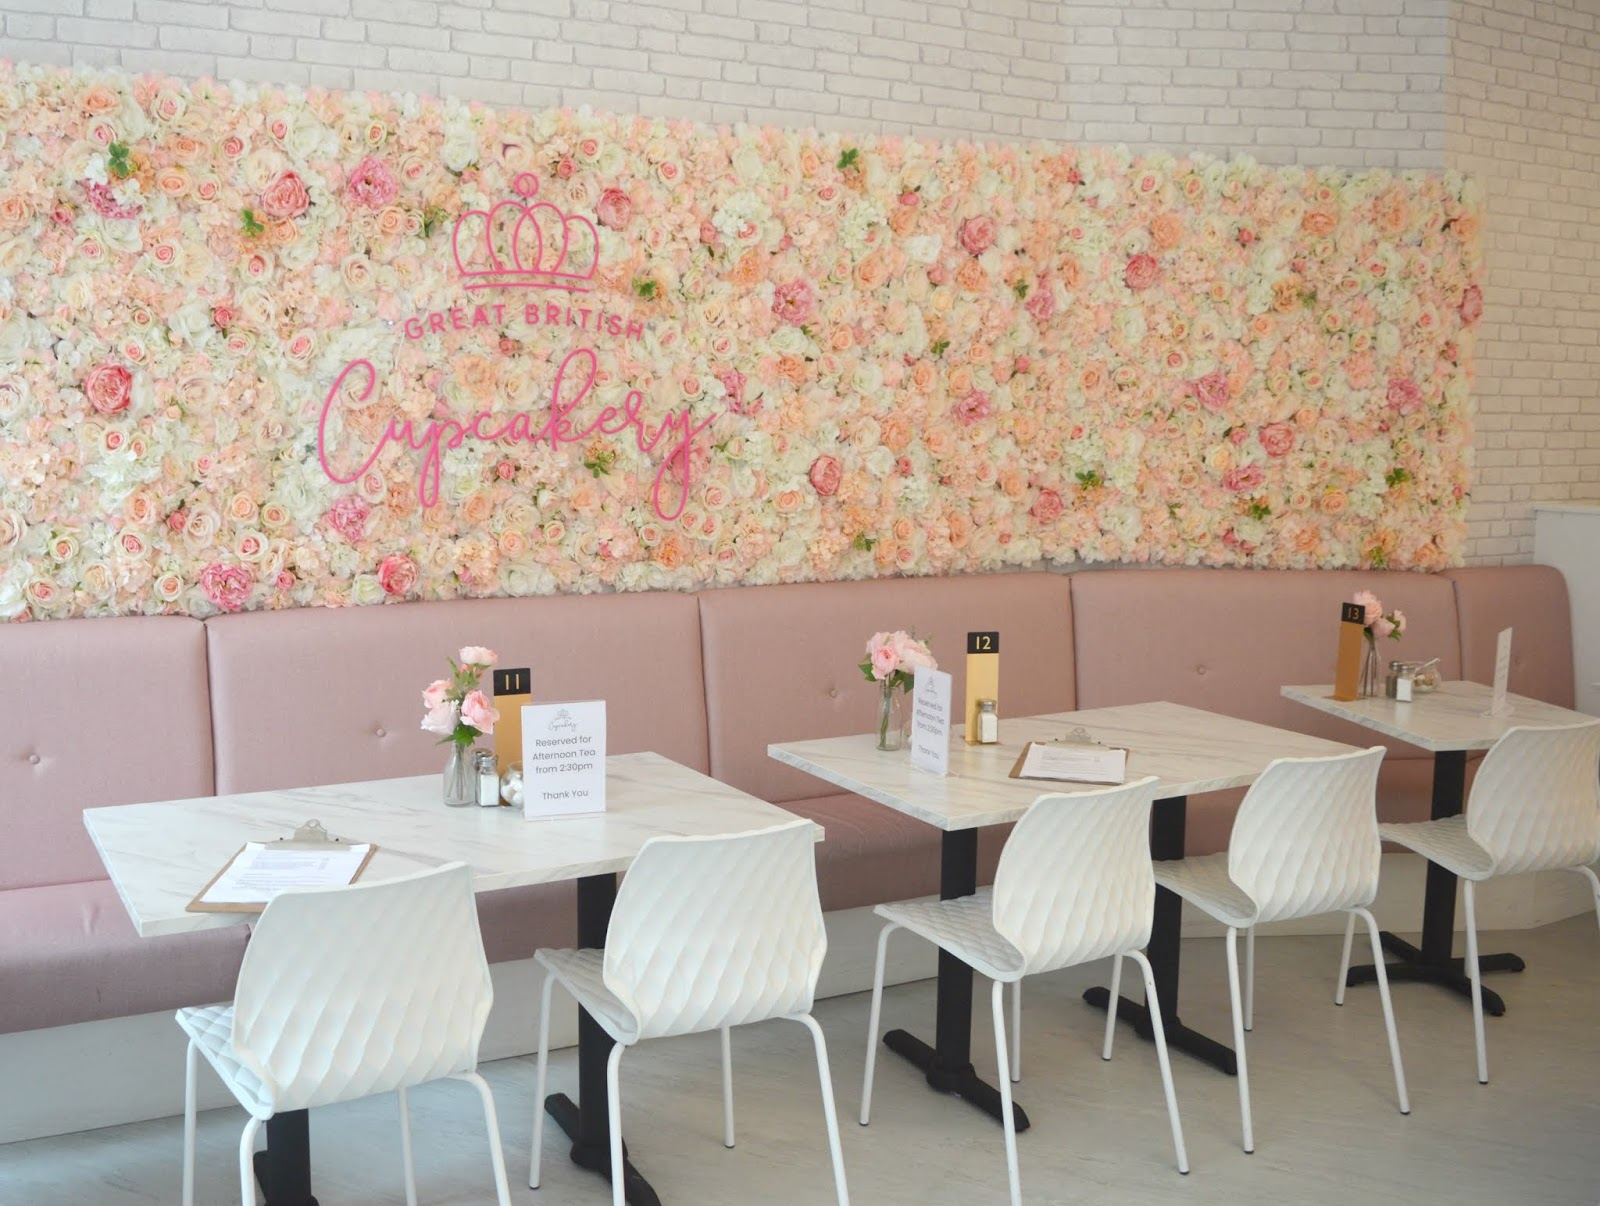 Flower Walls and Pink Lattes - Why The Great British Cupcakery is the Instagram Hot Spot of Newcastle